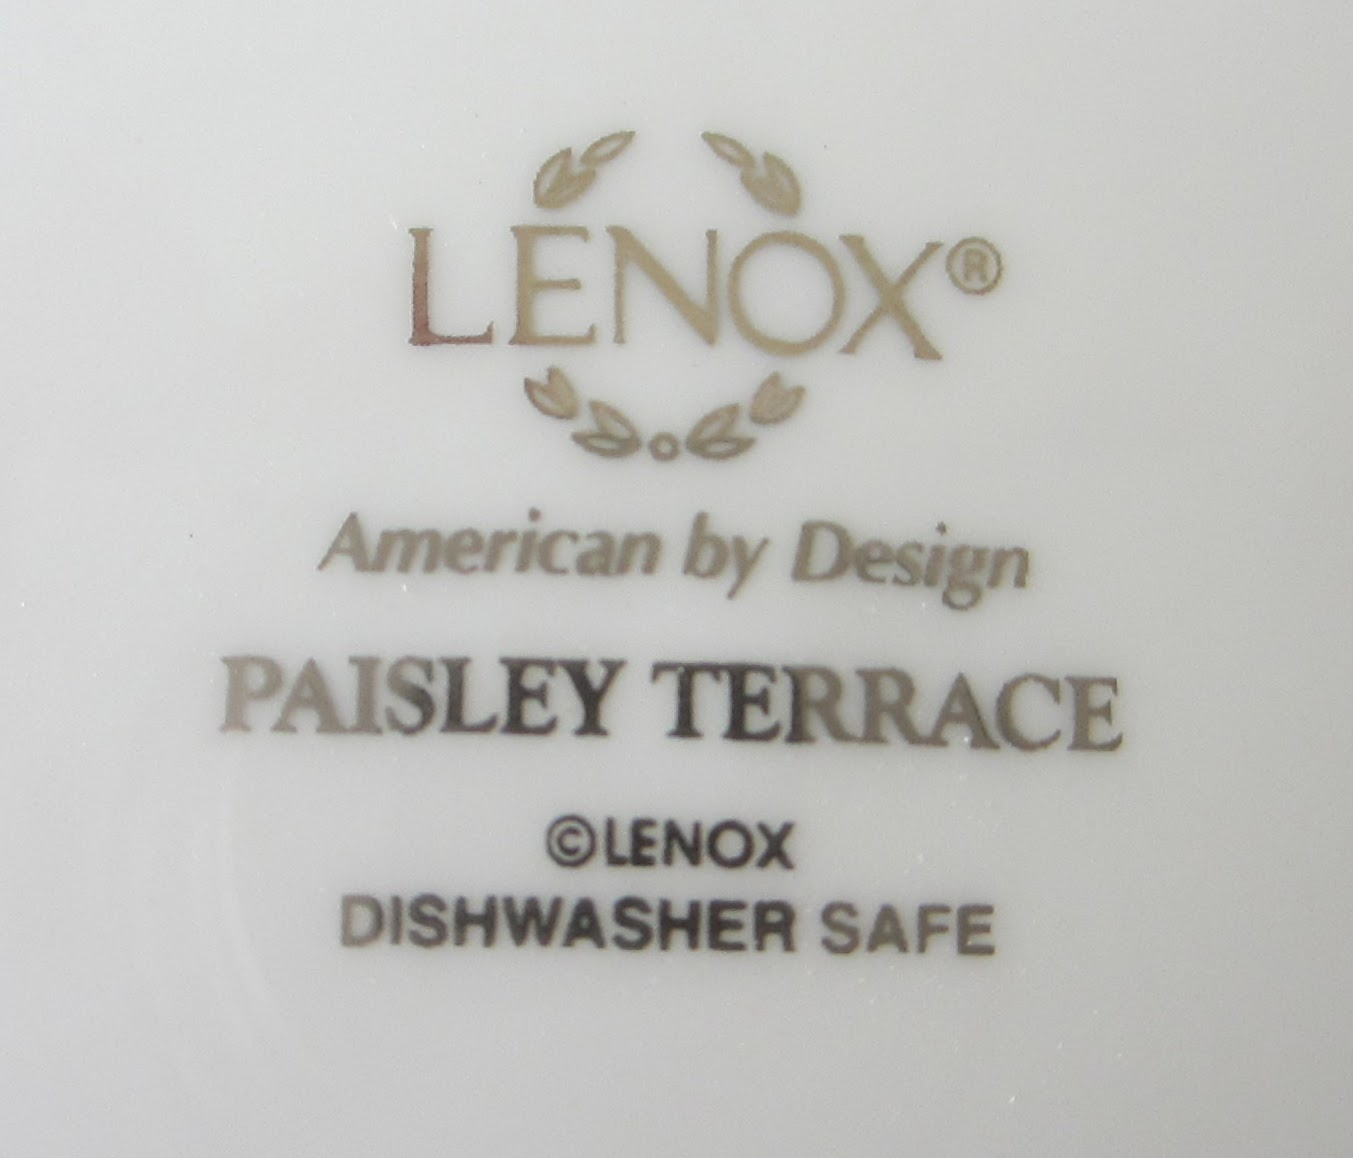 Table For One Lenox Paisley Terrace Table